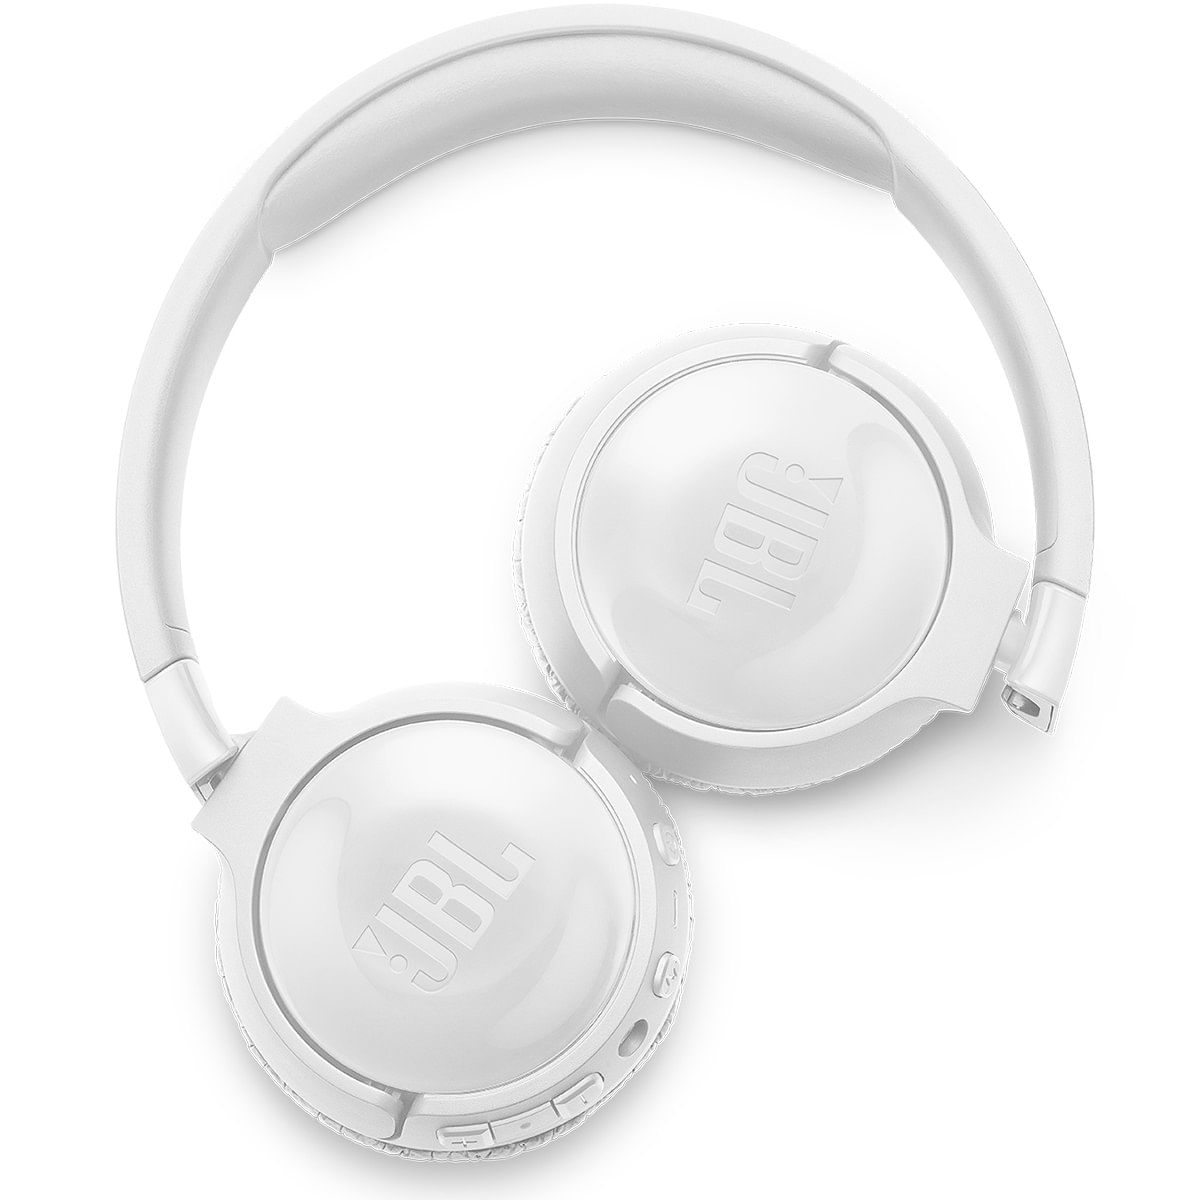 Fone de Ouvido Headphone Bluetooth Tune Noise Cancelling Jbl Jblt600btncwht